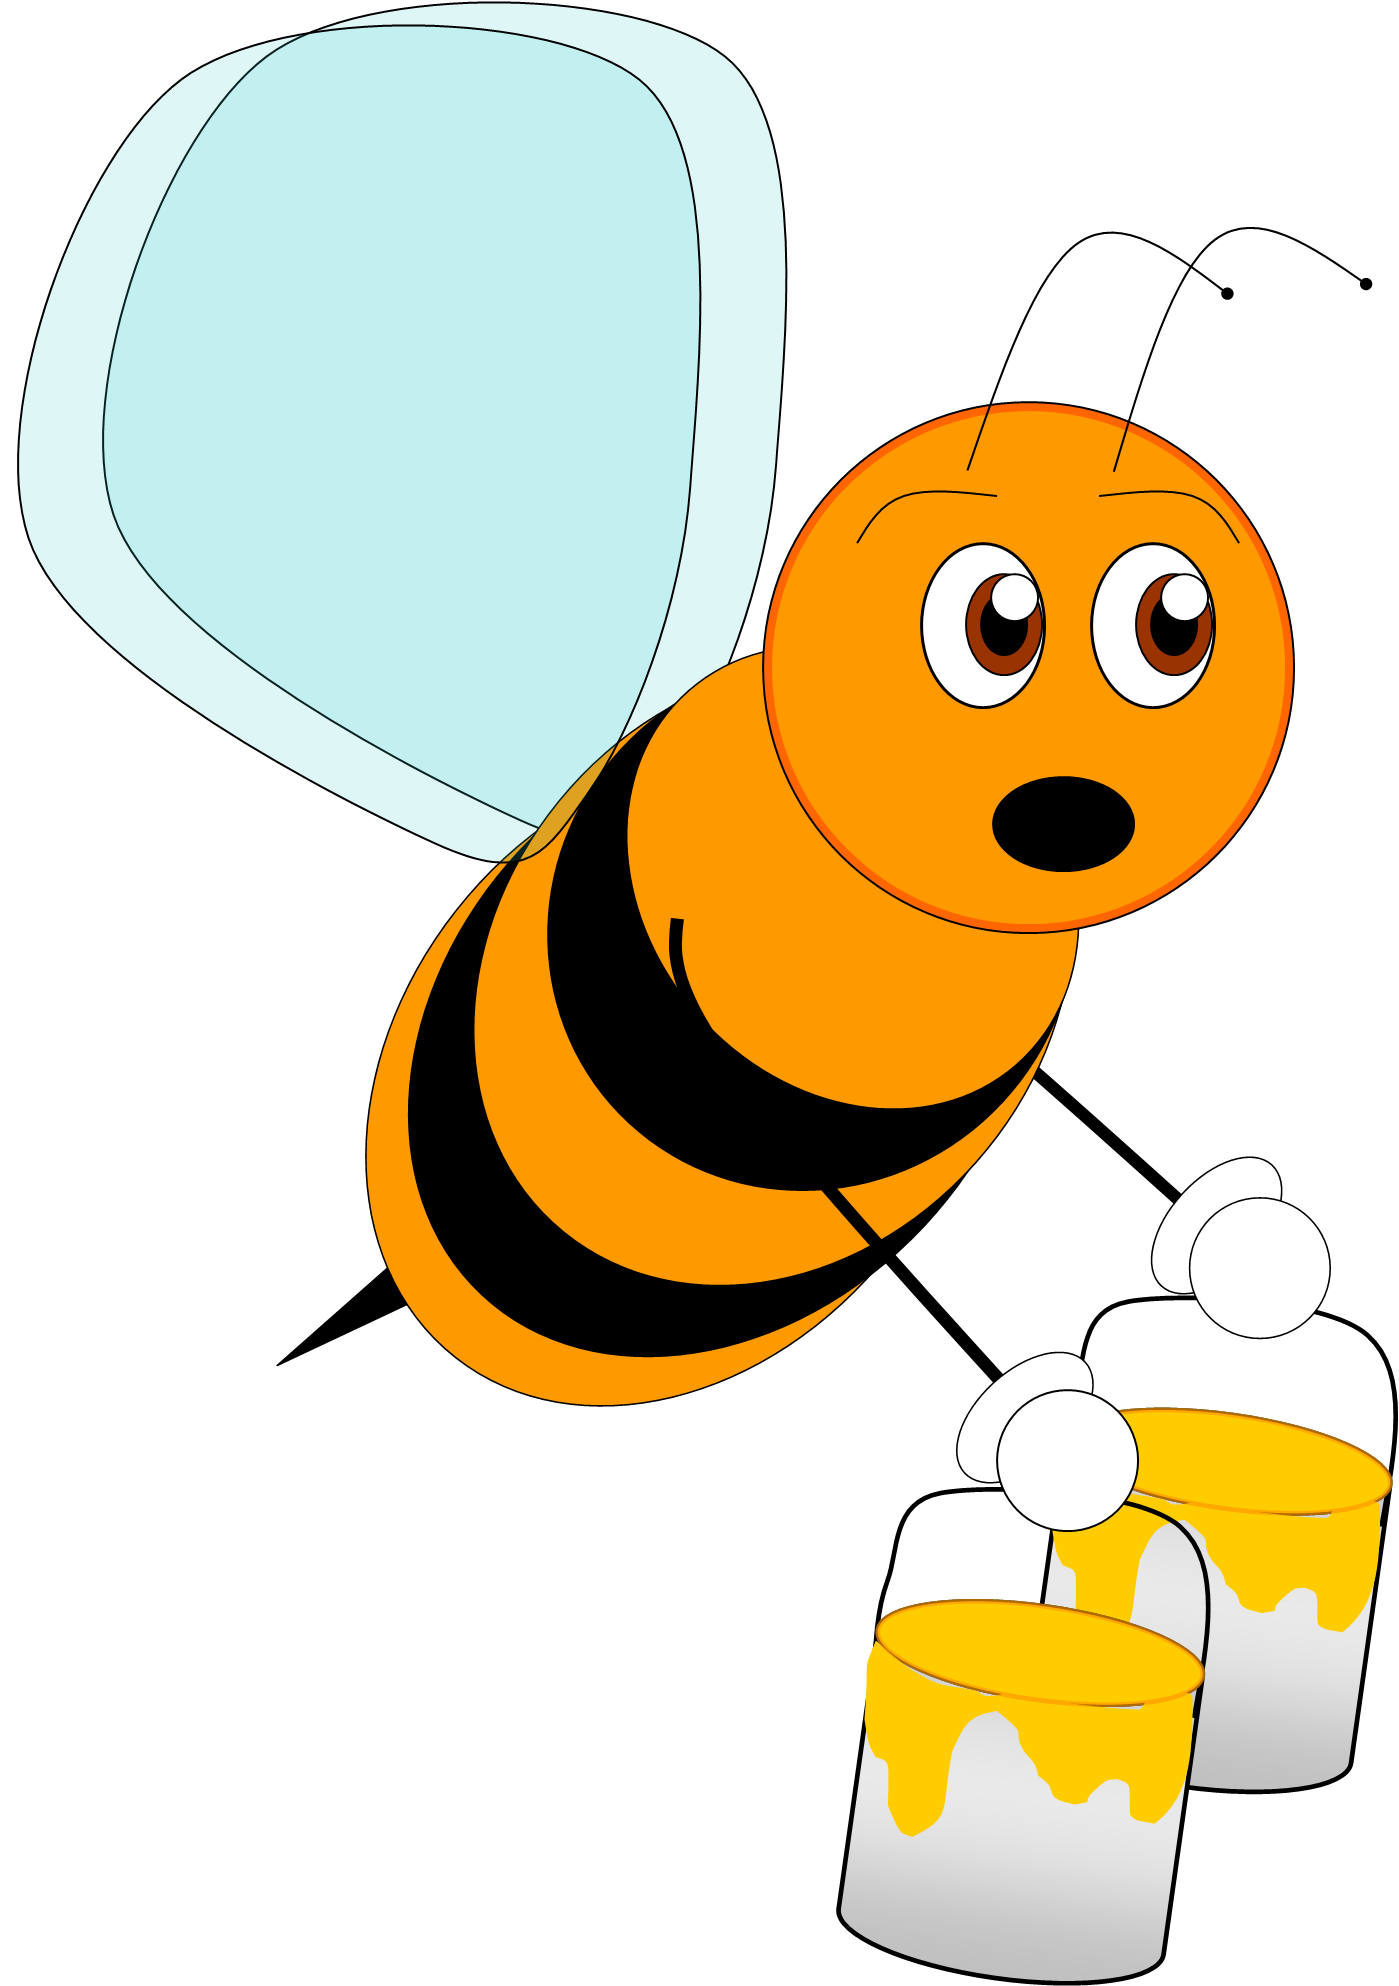 Bee vector png. Free images at clker